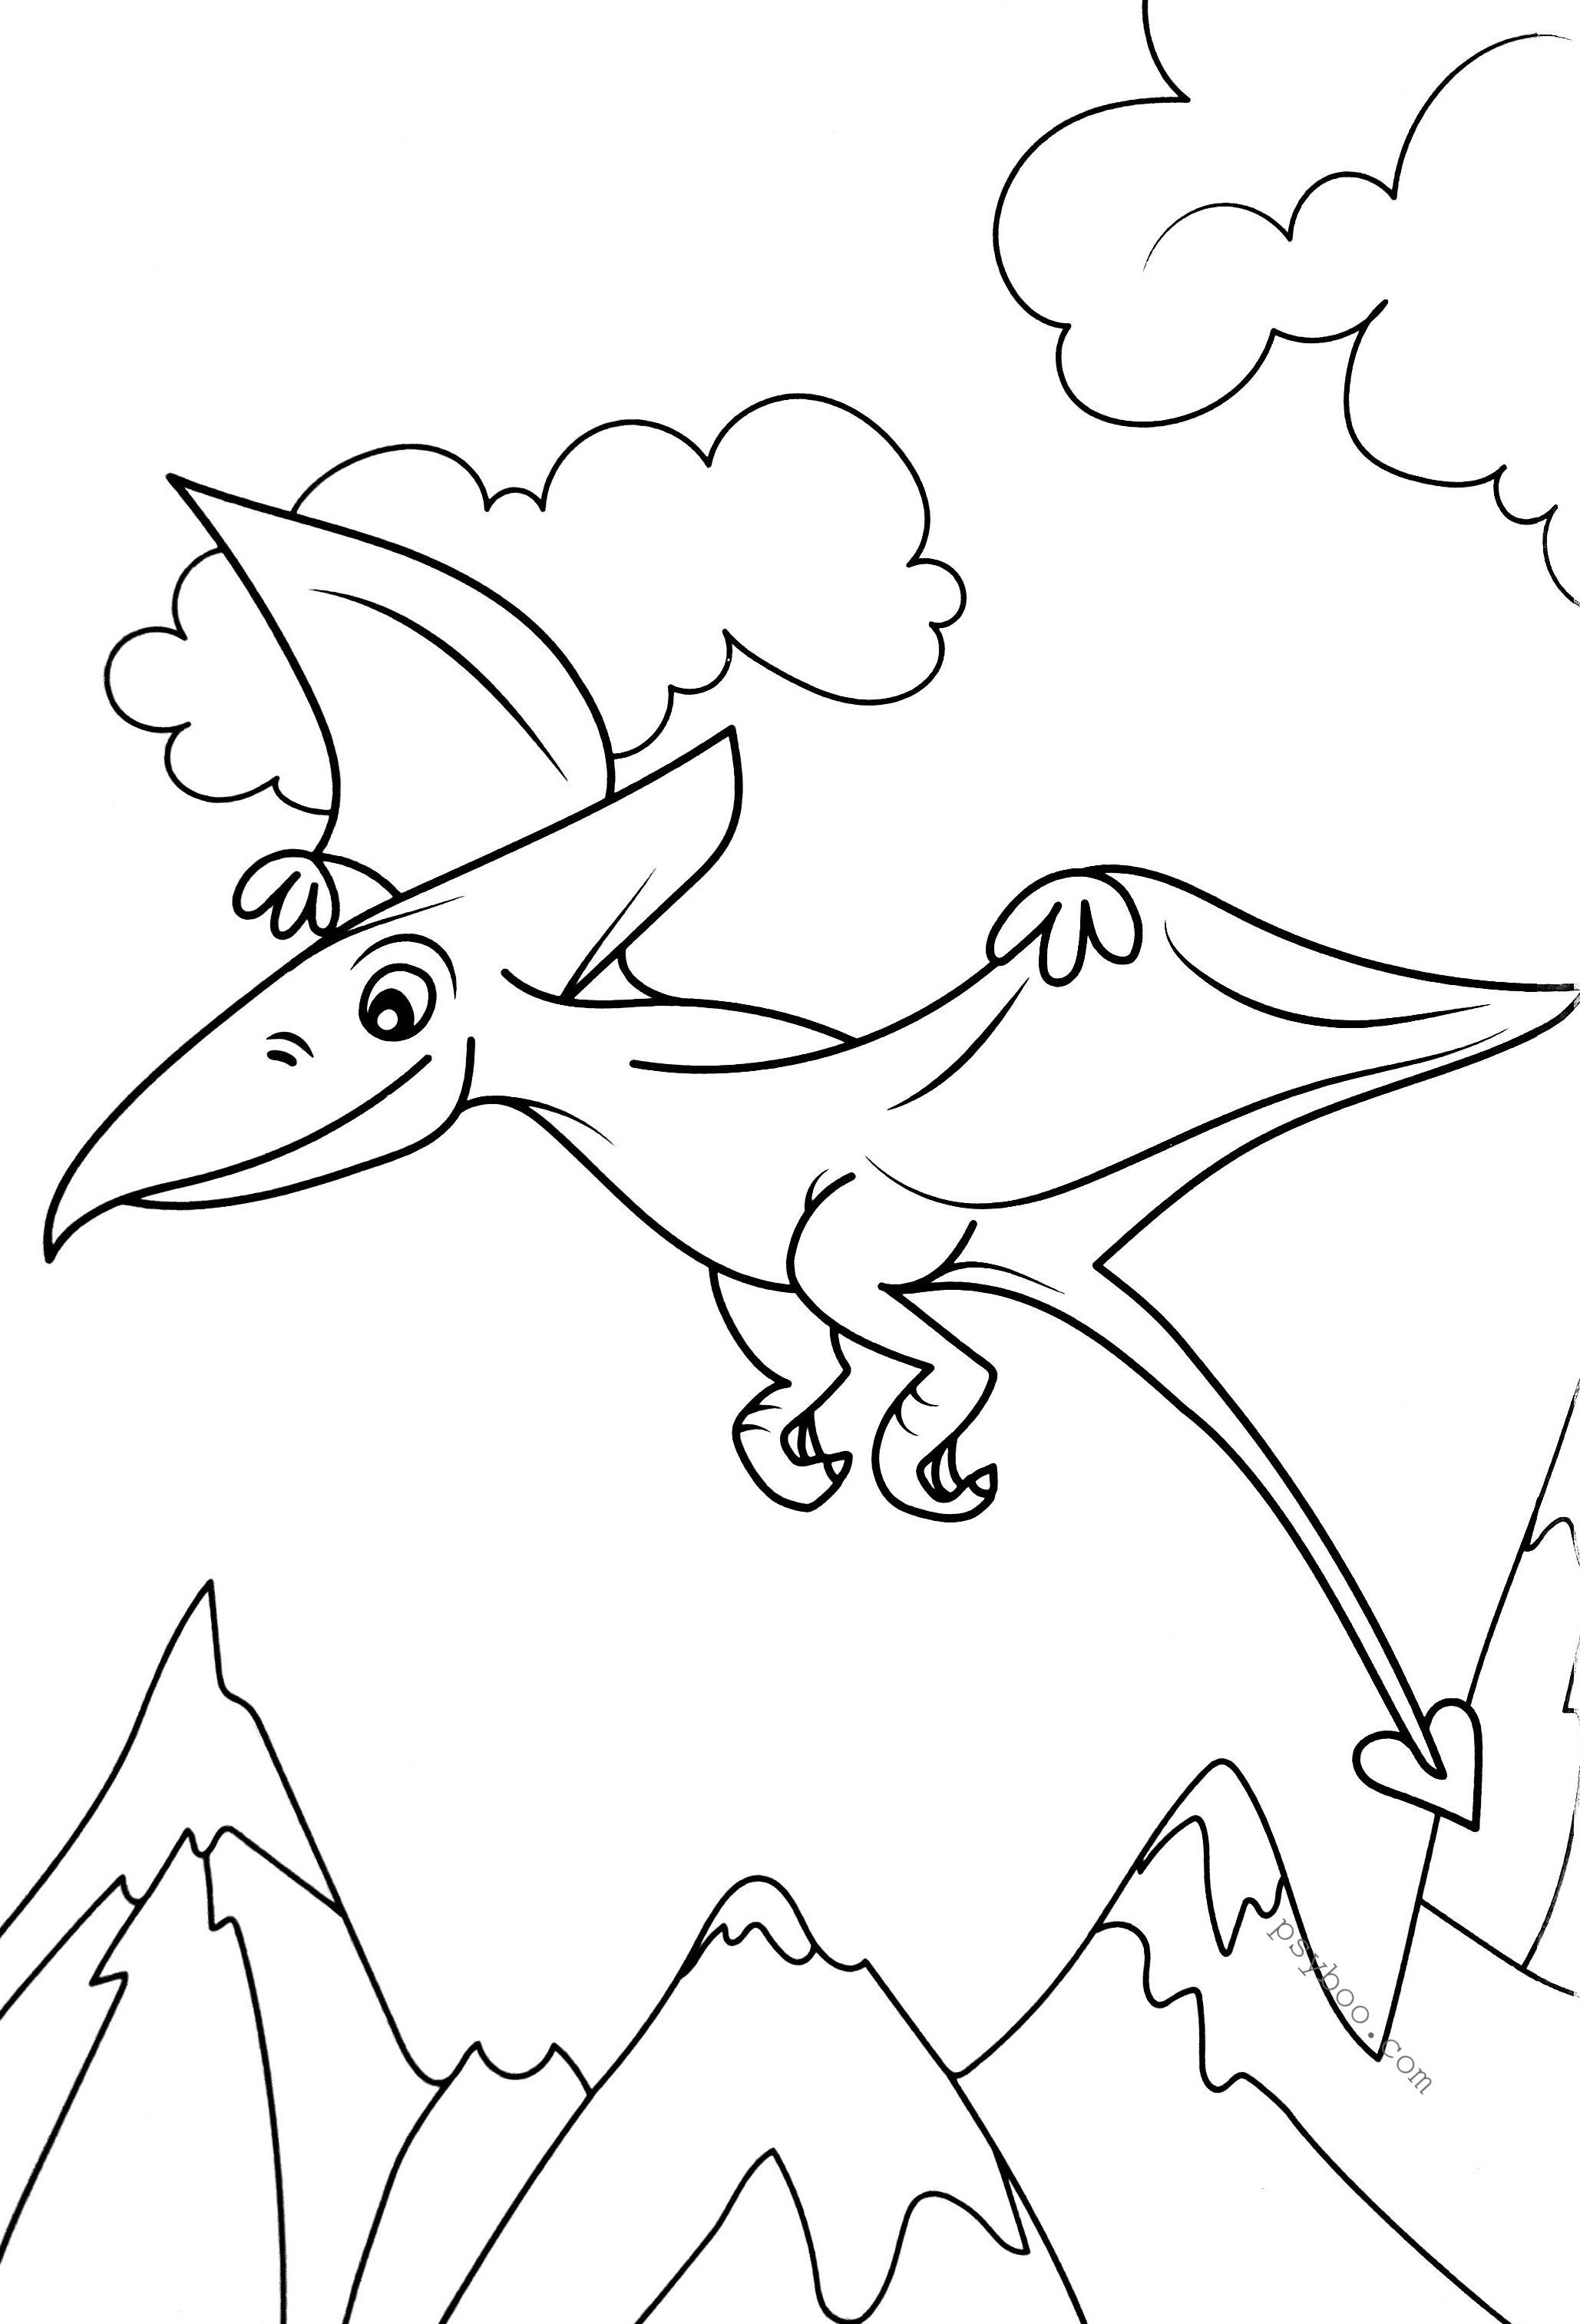 Little Dinosaur Pterodactyl Coloring Page for Free in 2020